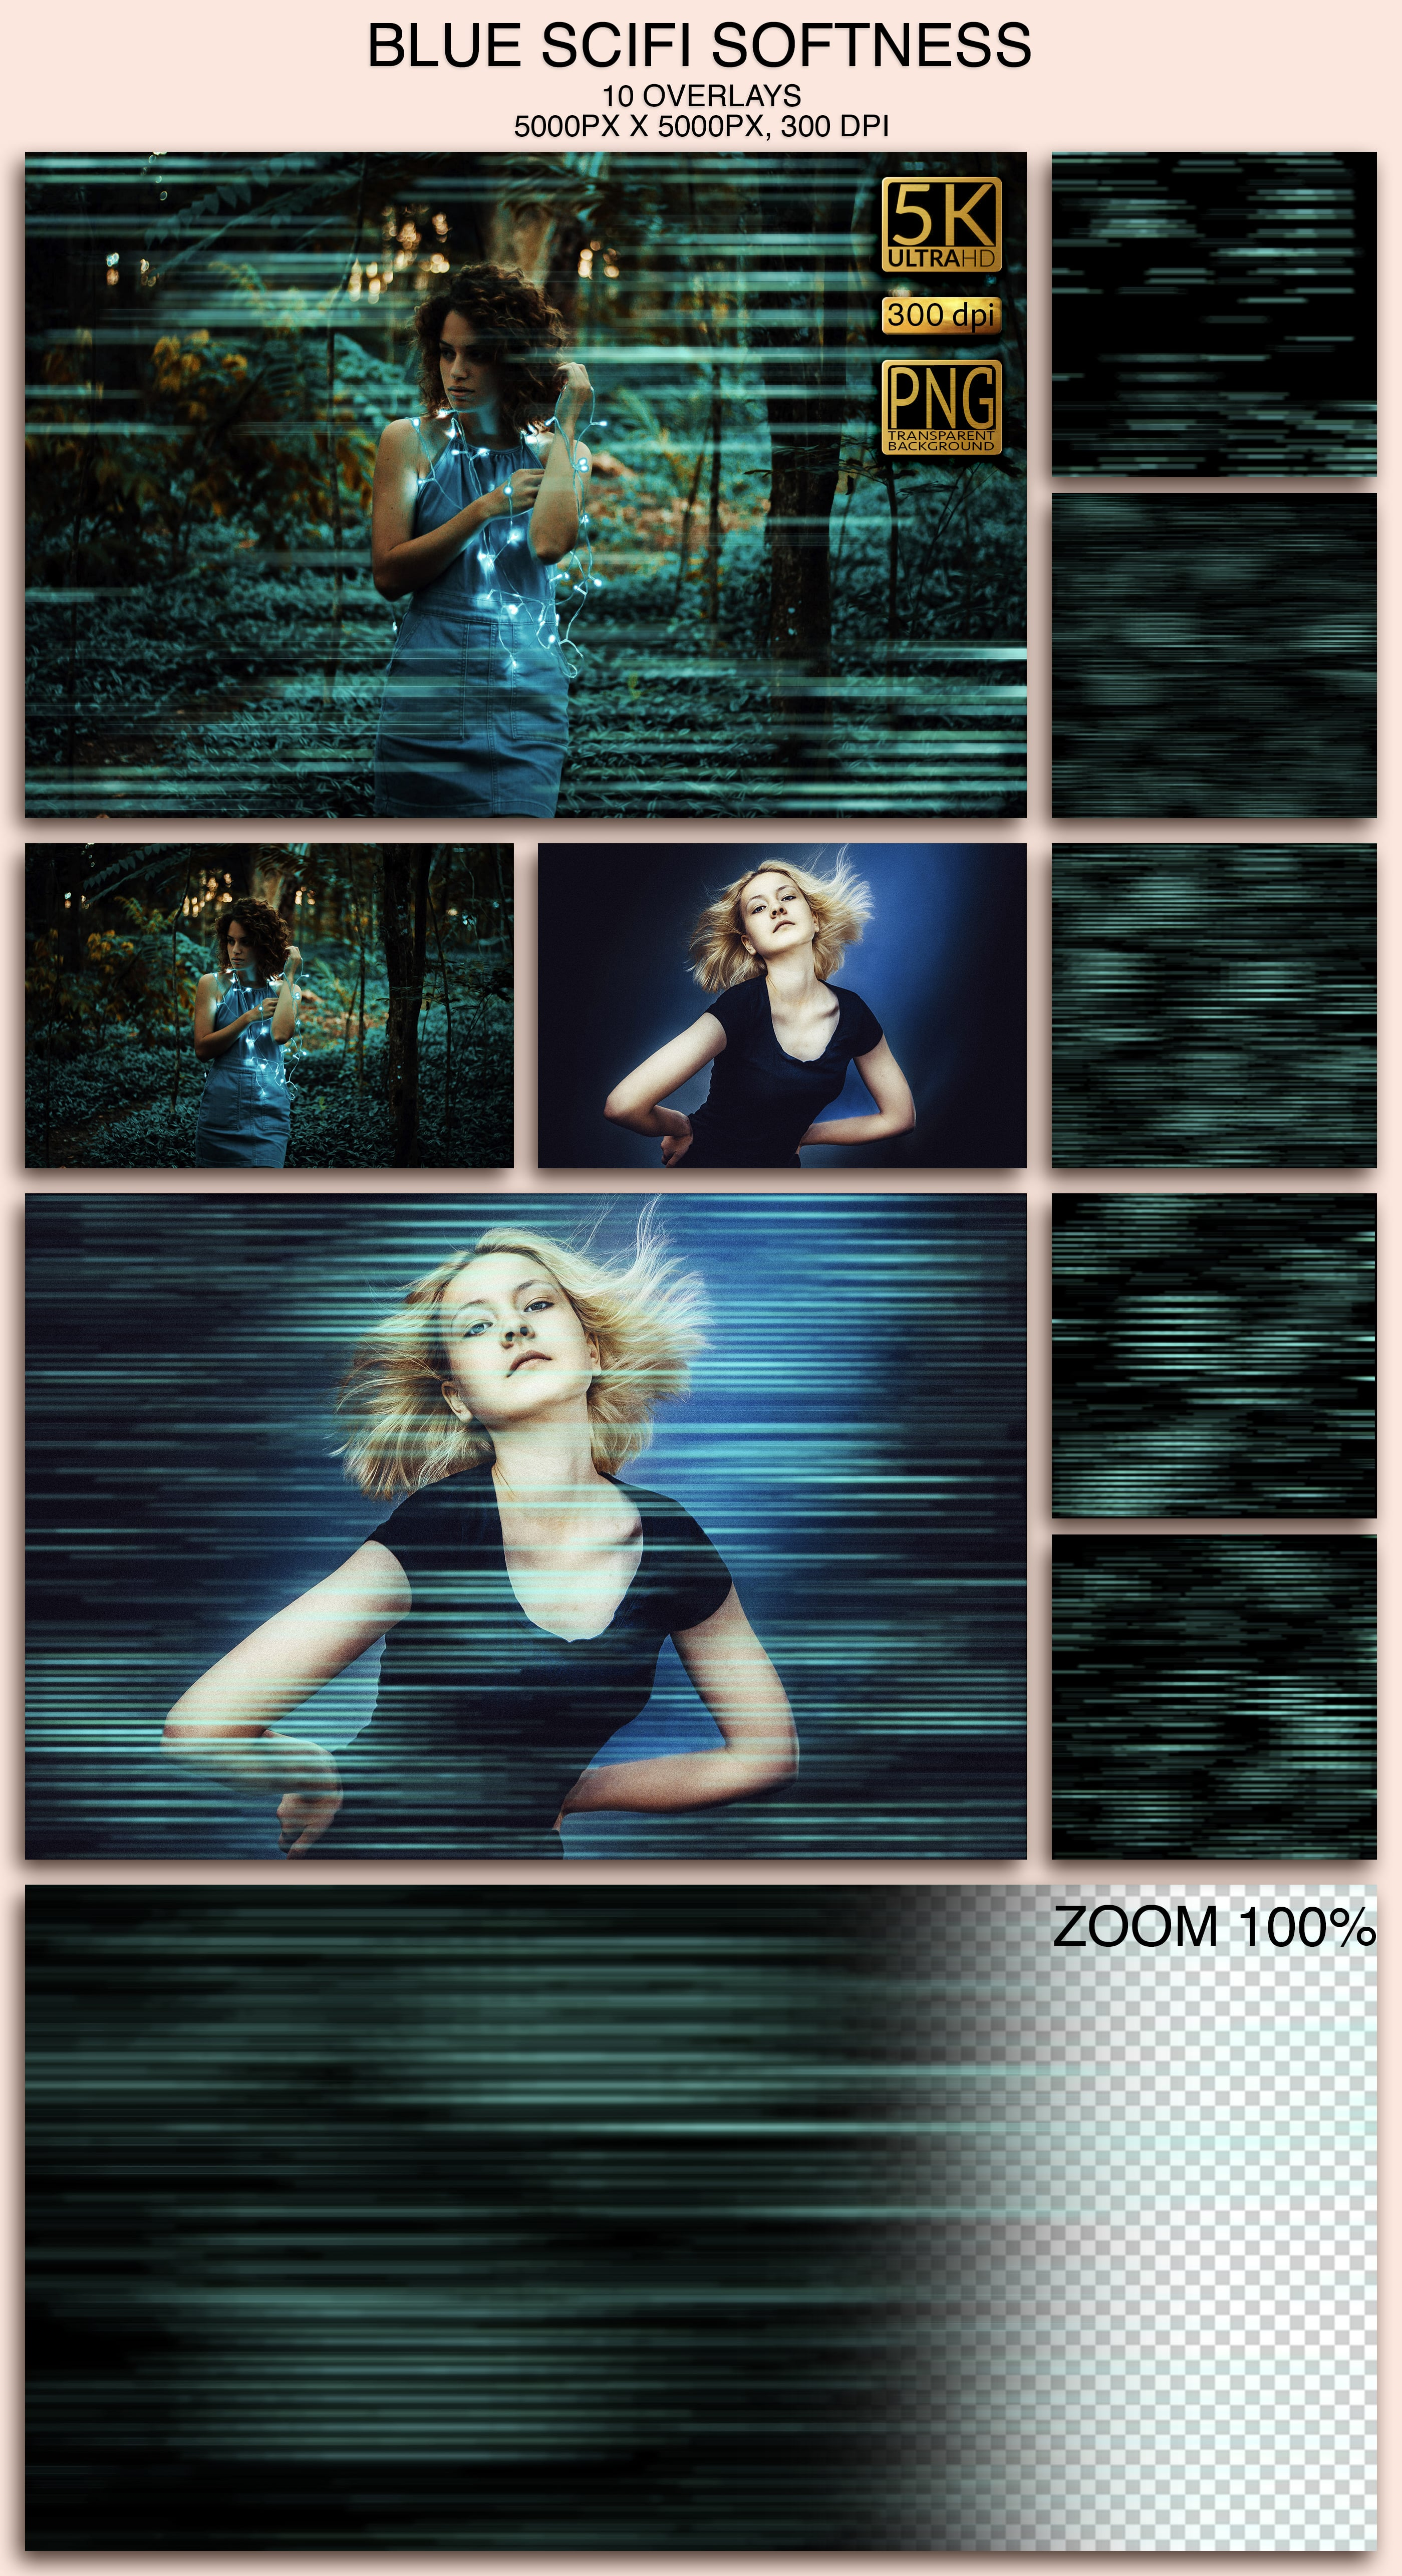 2006 Overlays Photoshop Bundle - Blue SciFi Softness Preview